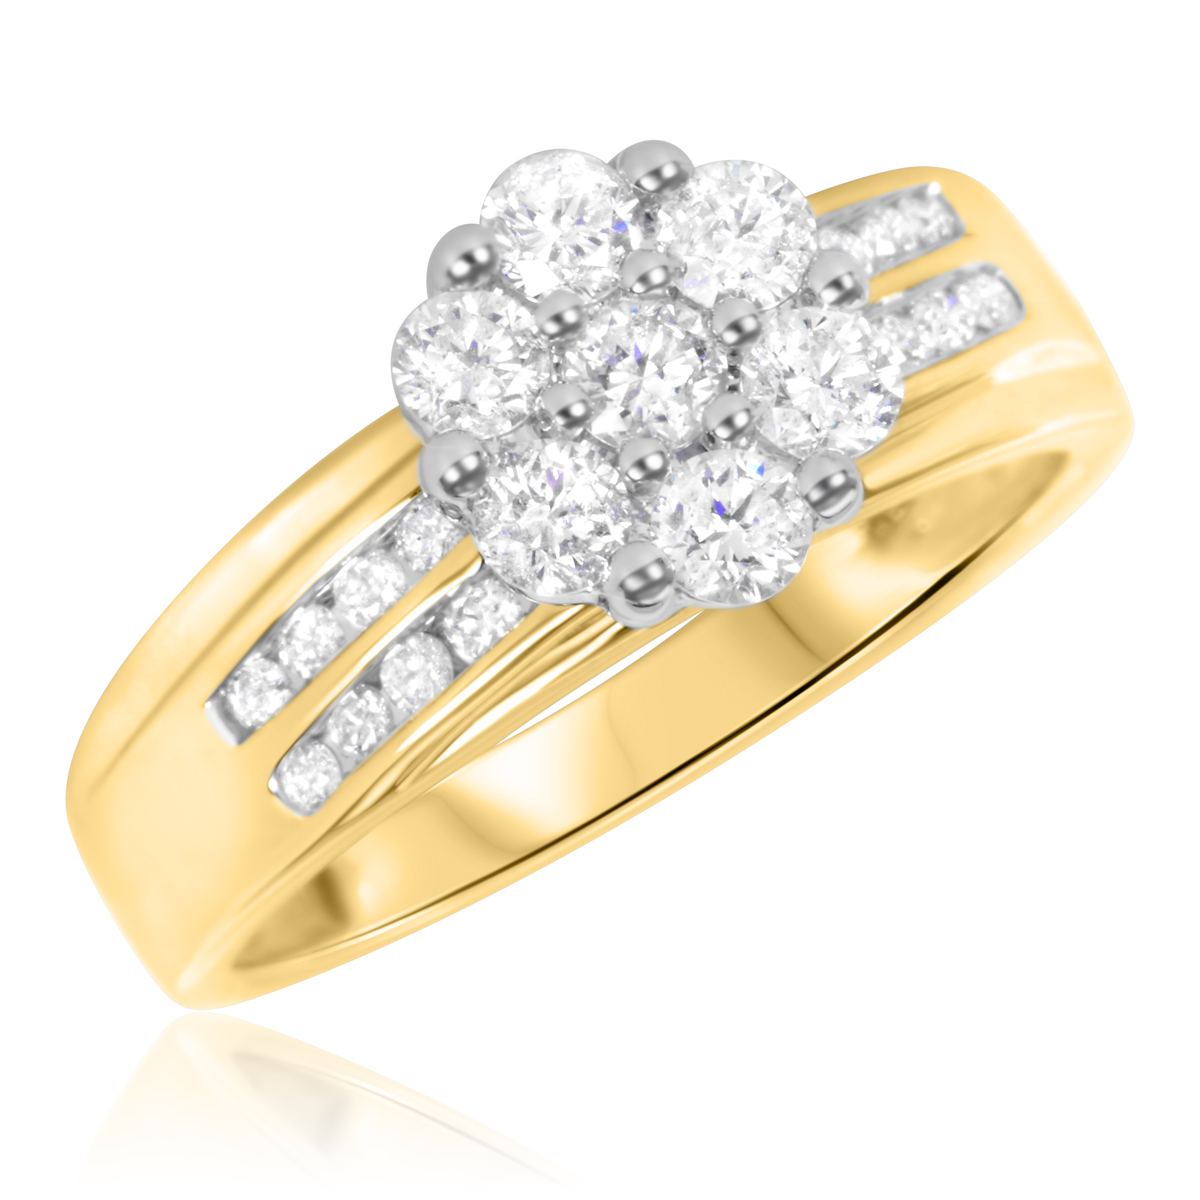 7/8 Carat T.W. Diamond Ladies' Engagement Ring 14K Yellow Gold